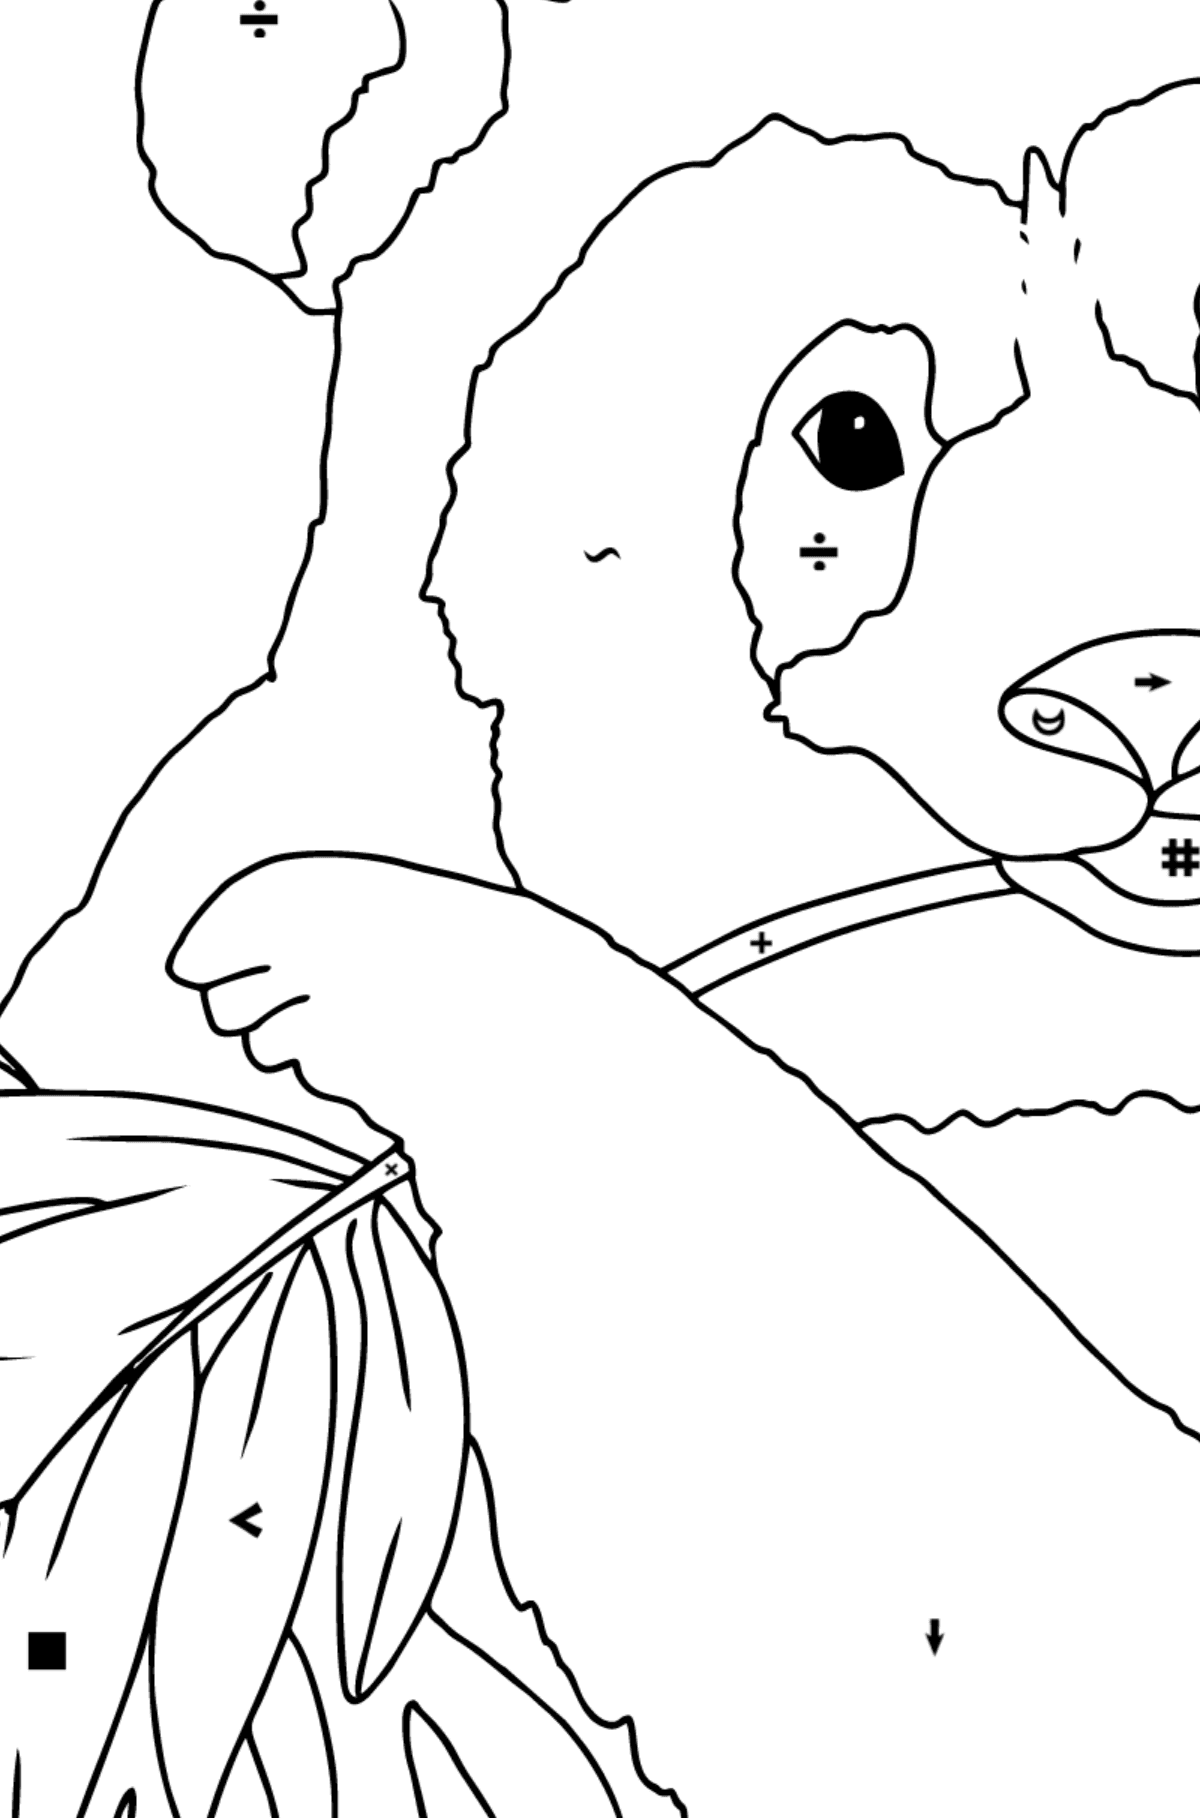 Coloring Page - A Panda is Eating Bamboo Leaves - Coloring by Symbols for Children